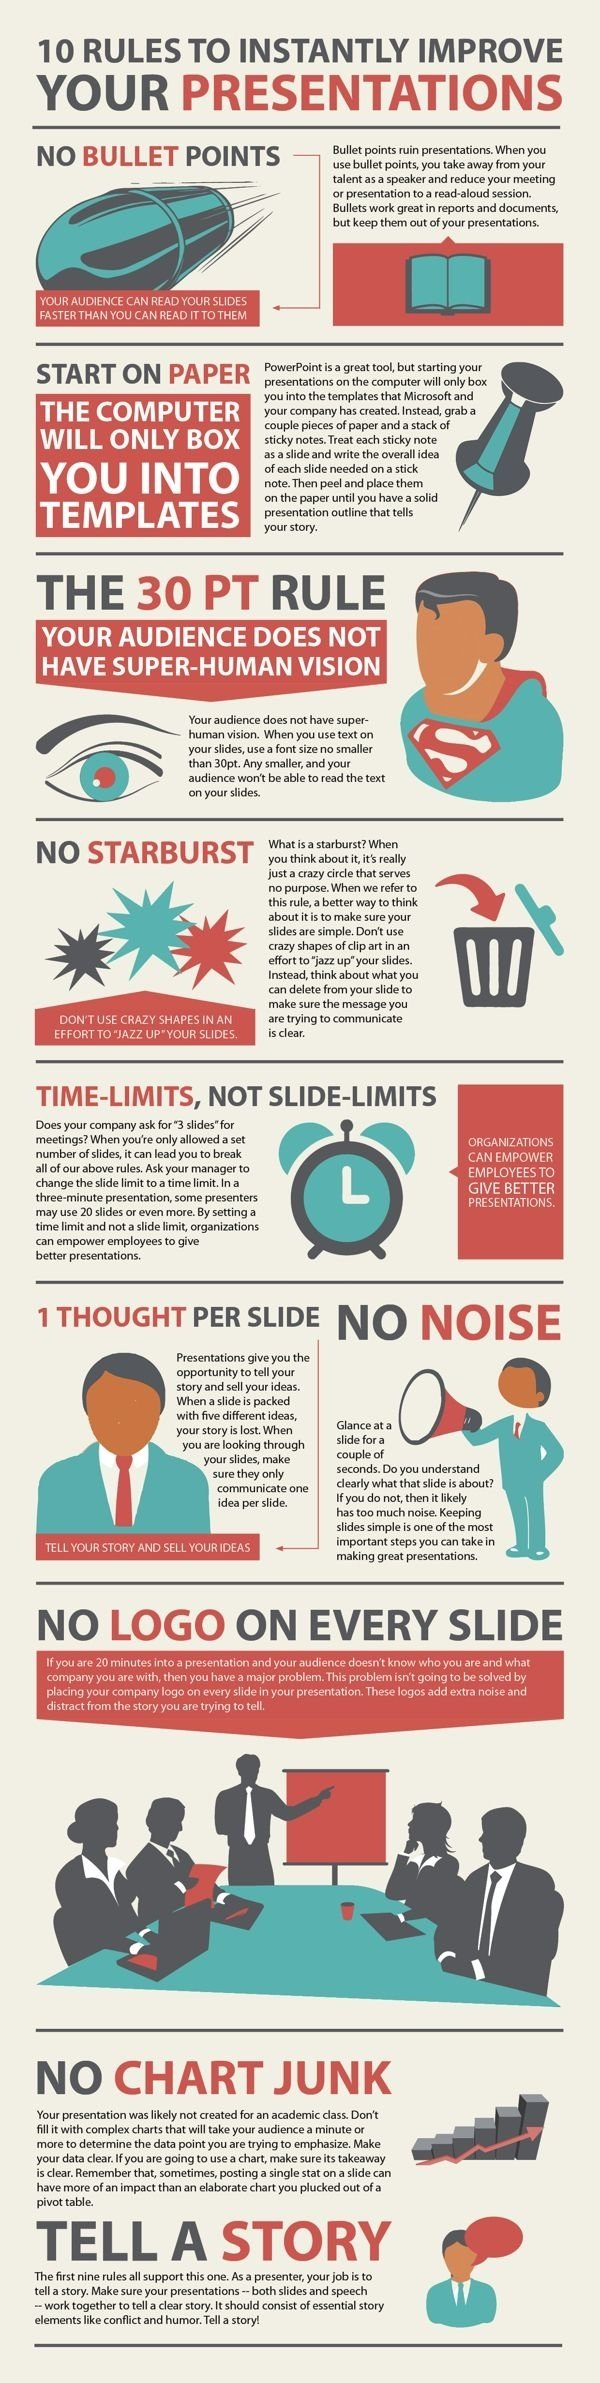 Rules to improve your presentations #Infographic